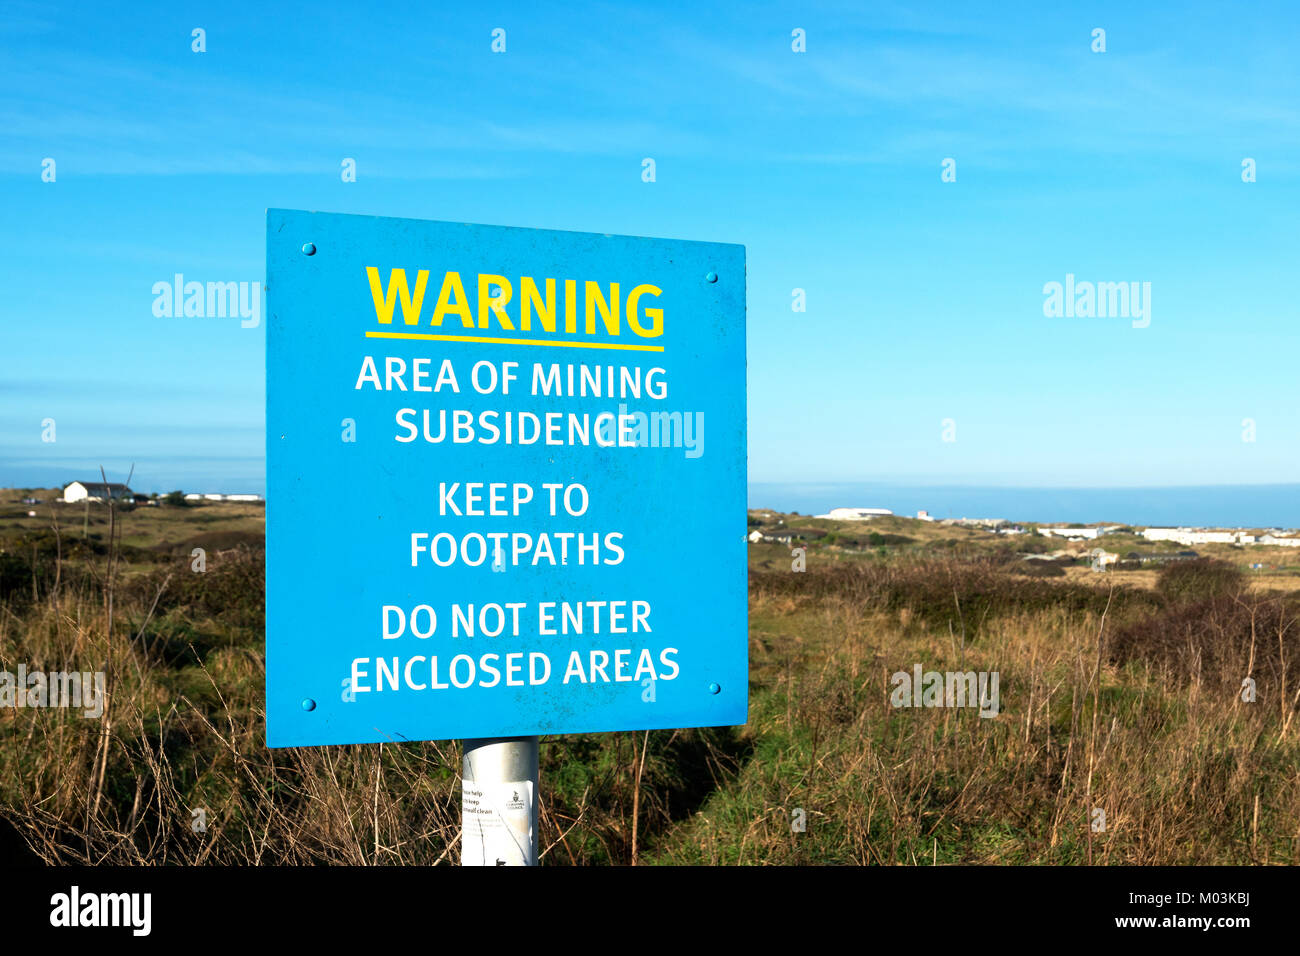 mining subsidence warning sign near perran sands, perranporth, cornwall, england, uk. - Stock Image